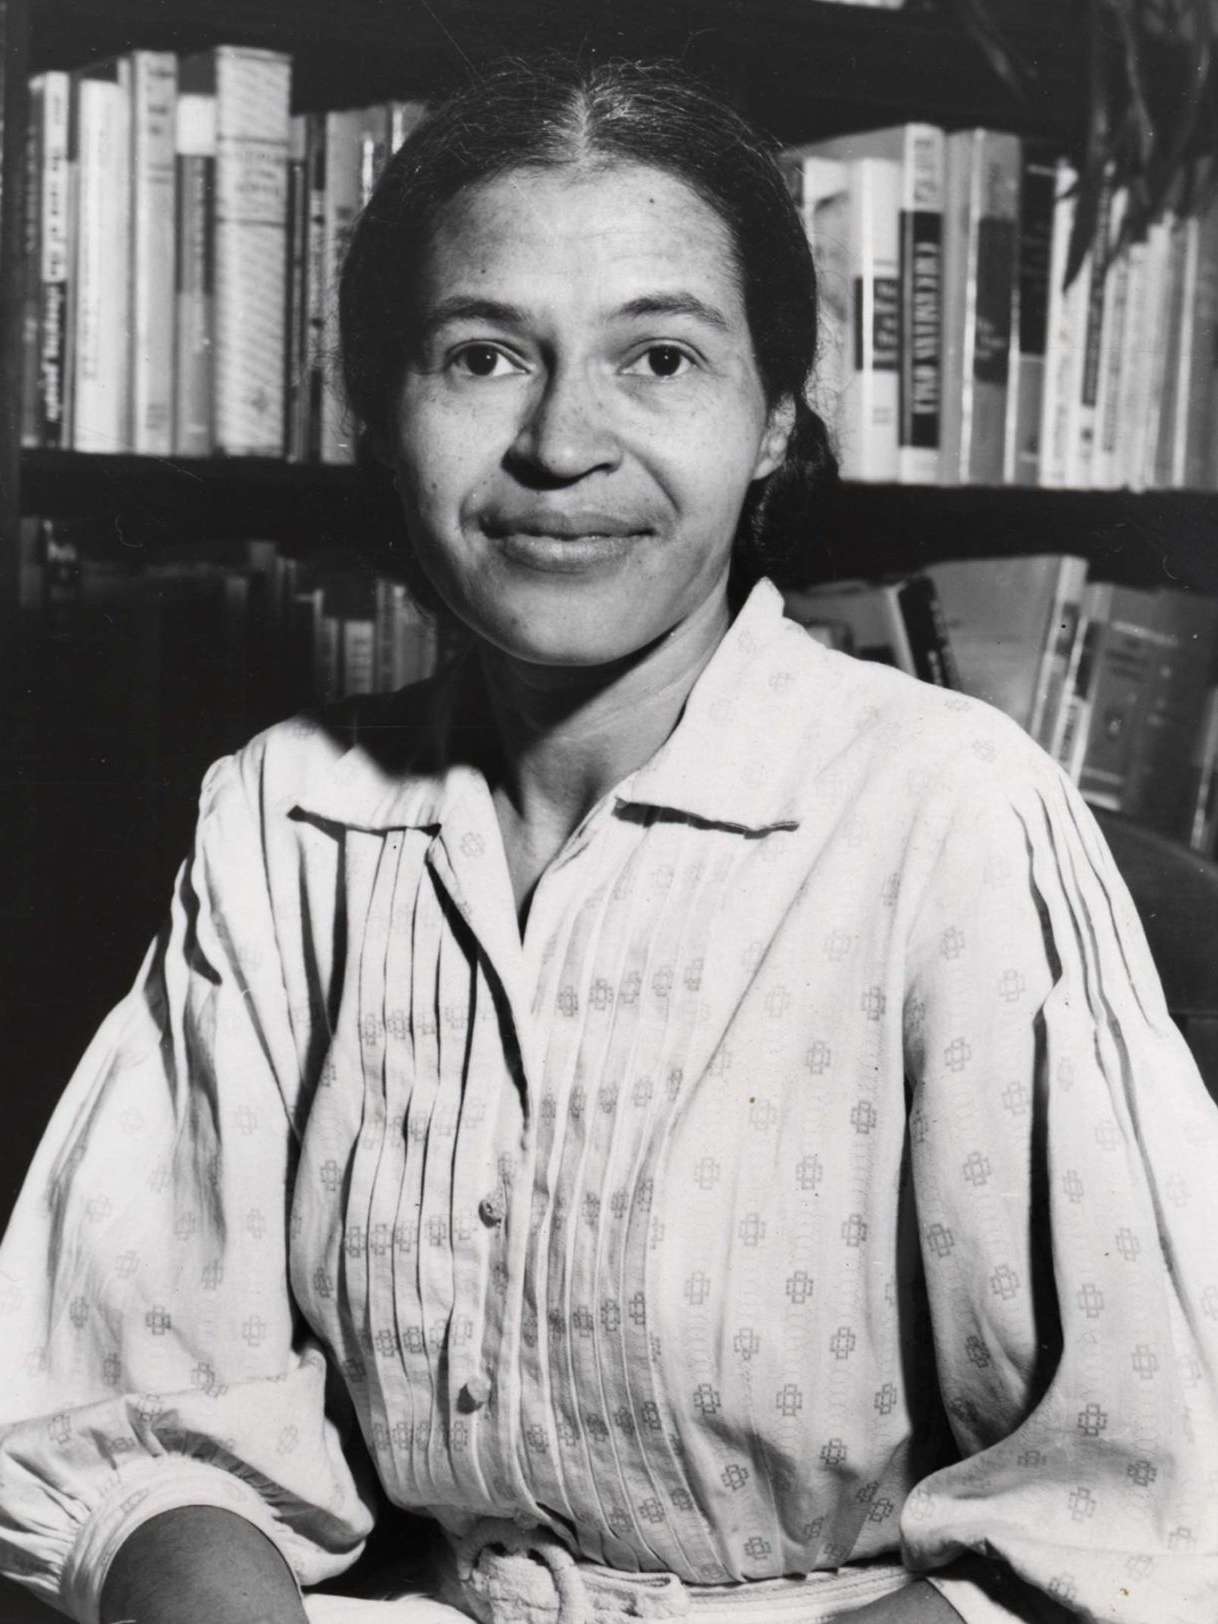 ROSA PARKS - On December 1, 1955, Rosa Parks found herself in Montgomery, Alabama, being asked to give up her seat and move to the back of the bus. In an effort to stand up for herself and the worth she believed she carried, she refused to move. She was arrested that day, and as a result, set a spark amongst the African American community that led them to protest all the way to the Supreme Court. As a result of her courage and the many that came after her,bus segregation ended and many were empowered to fight for equal rights amongst all American citizens. Rosa Parks went on to write a biography that was published in 1992, and has inspired many to stand up for what they believe in.